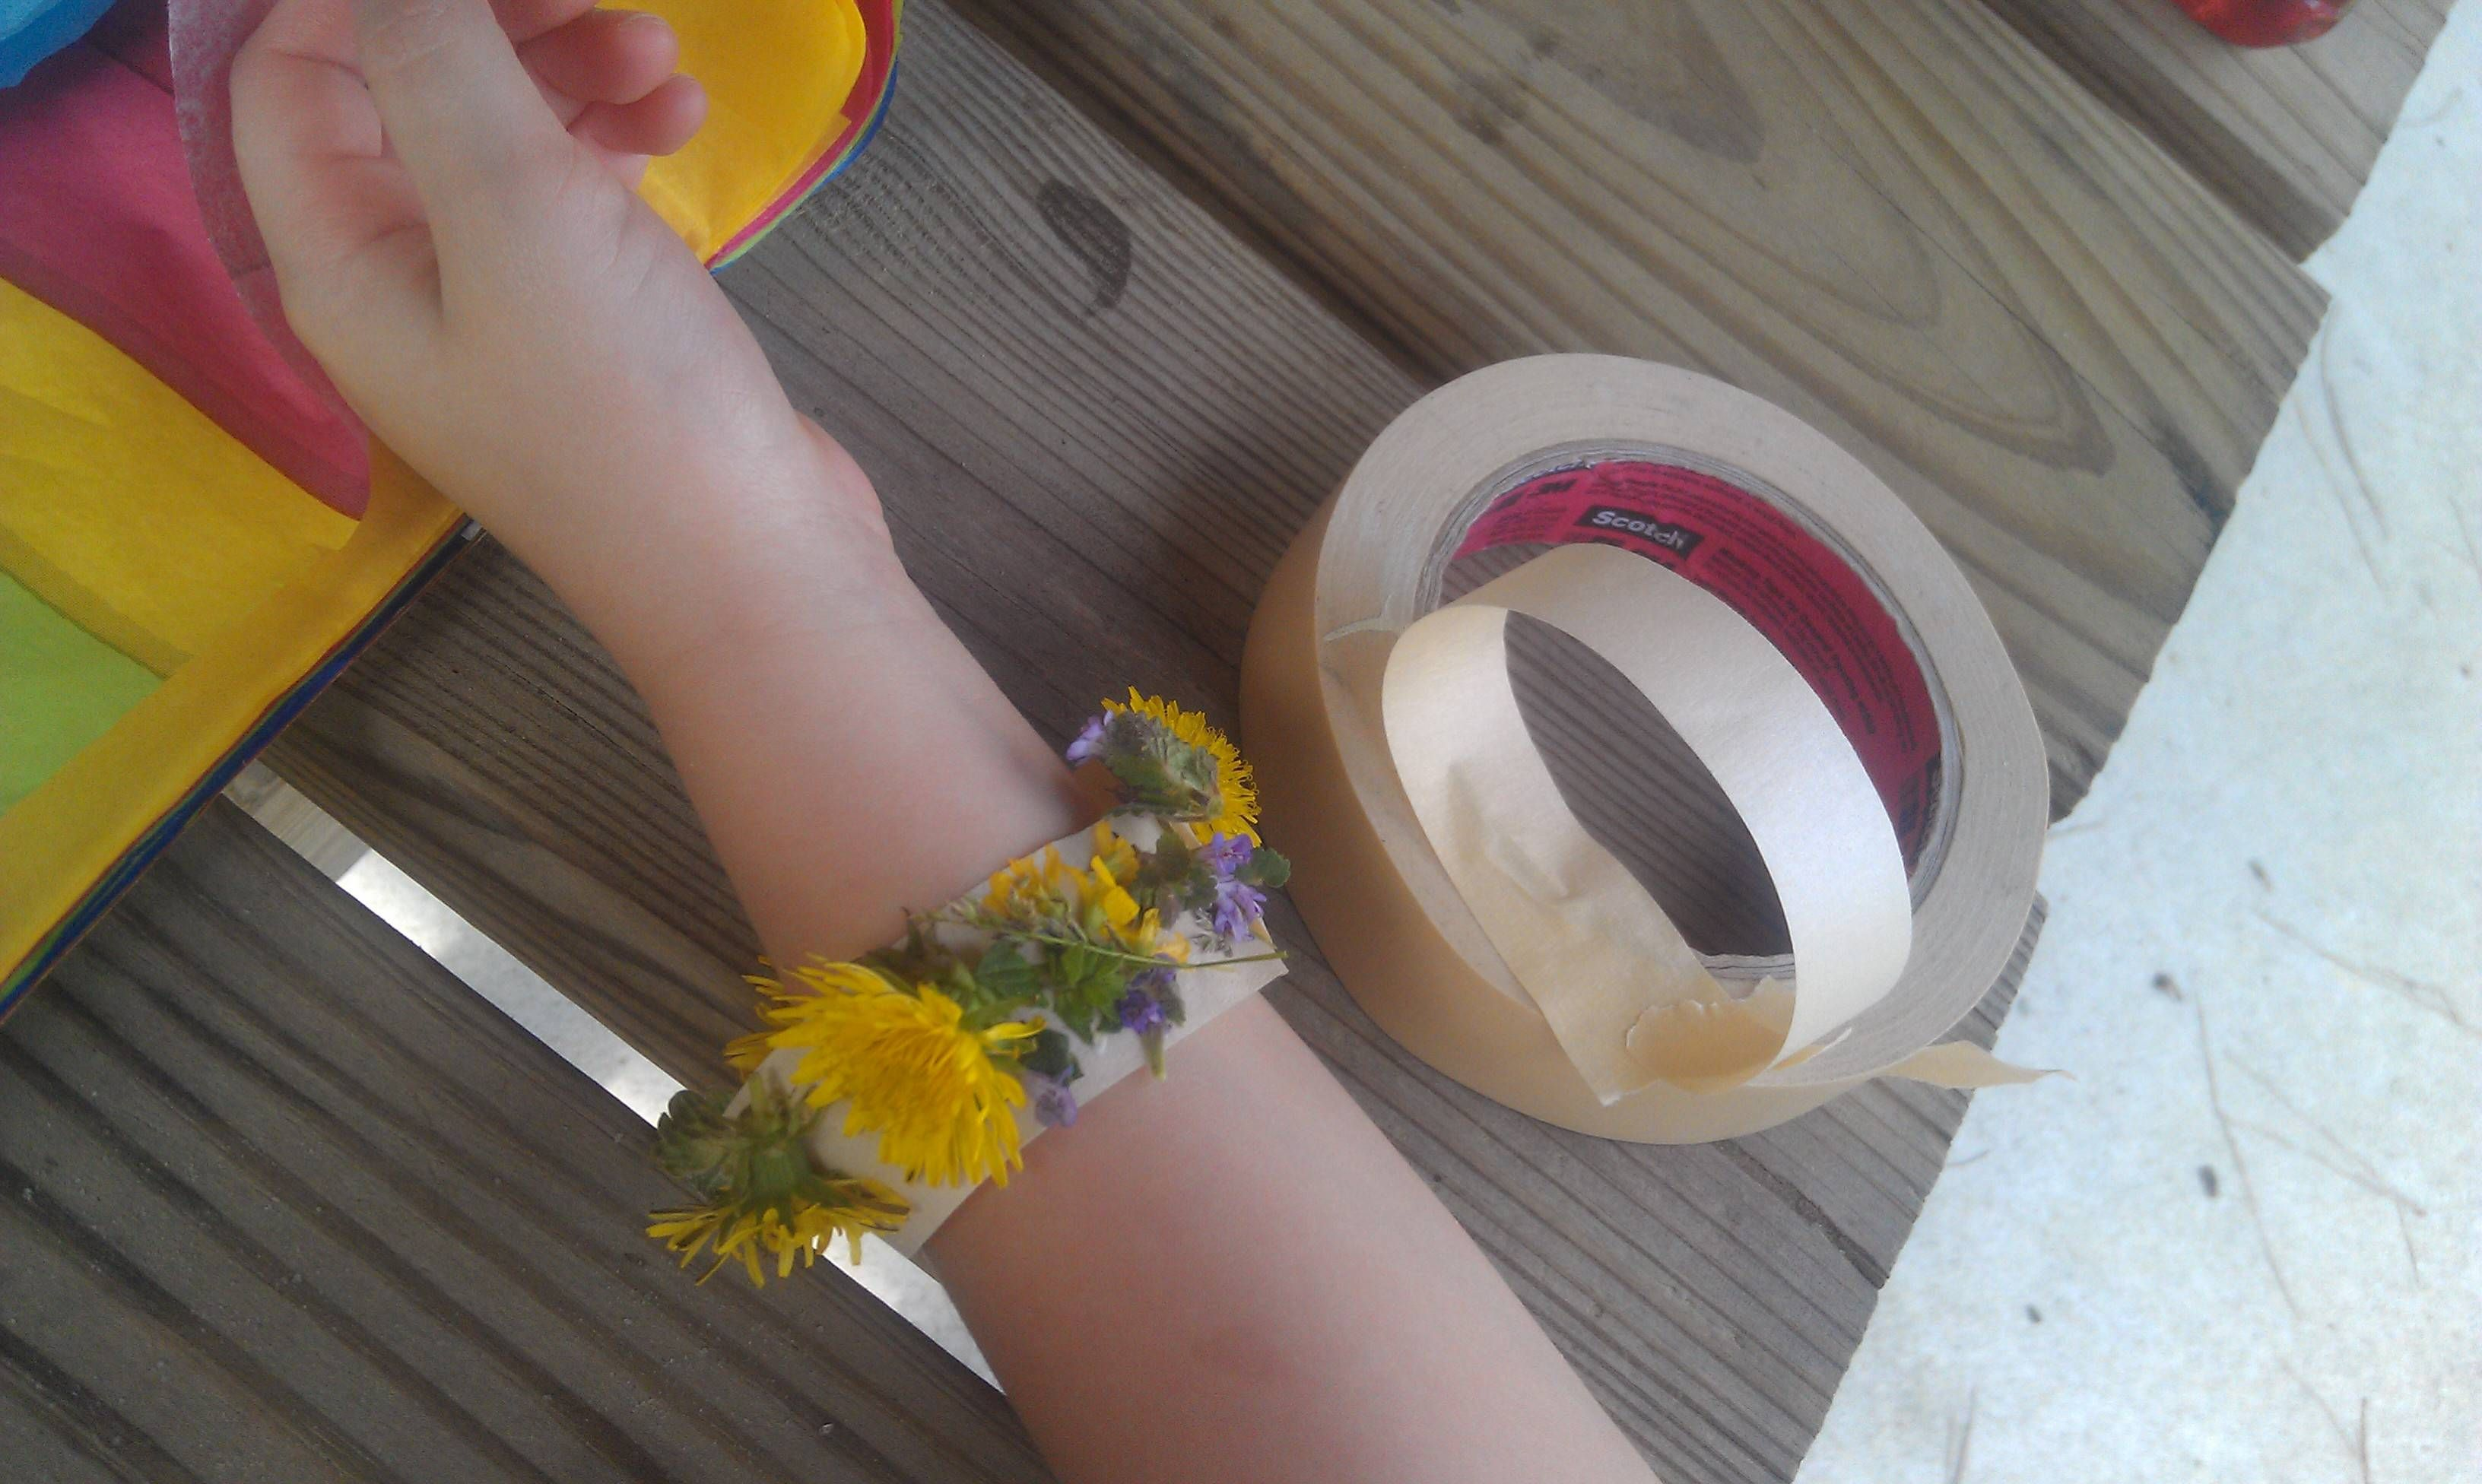 Little ones can collect flowers and stick them to their reversed tape bracelets! Nature fun!